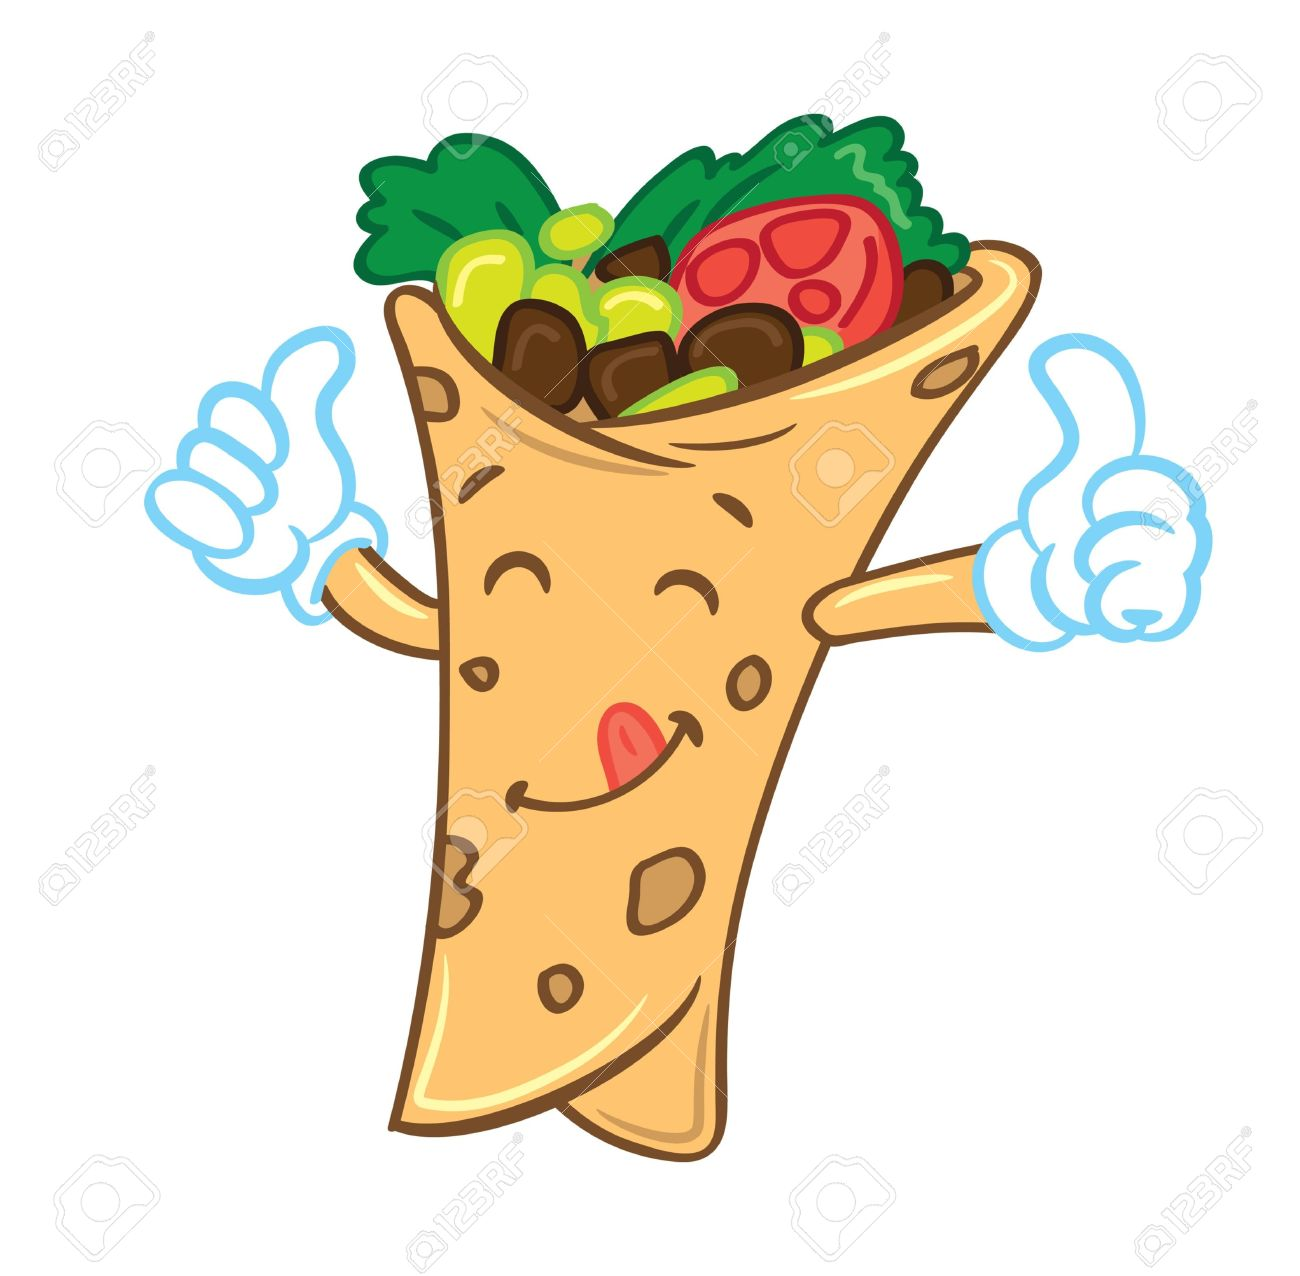 Breakfast burrito clip art.